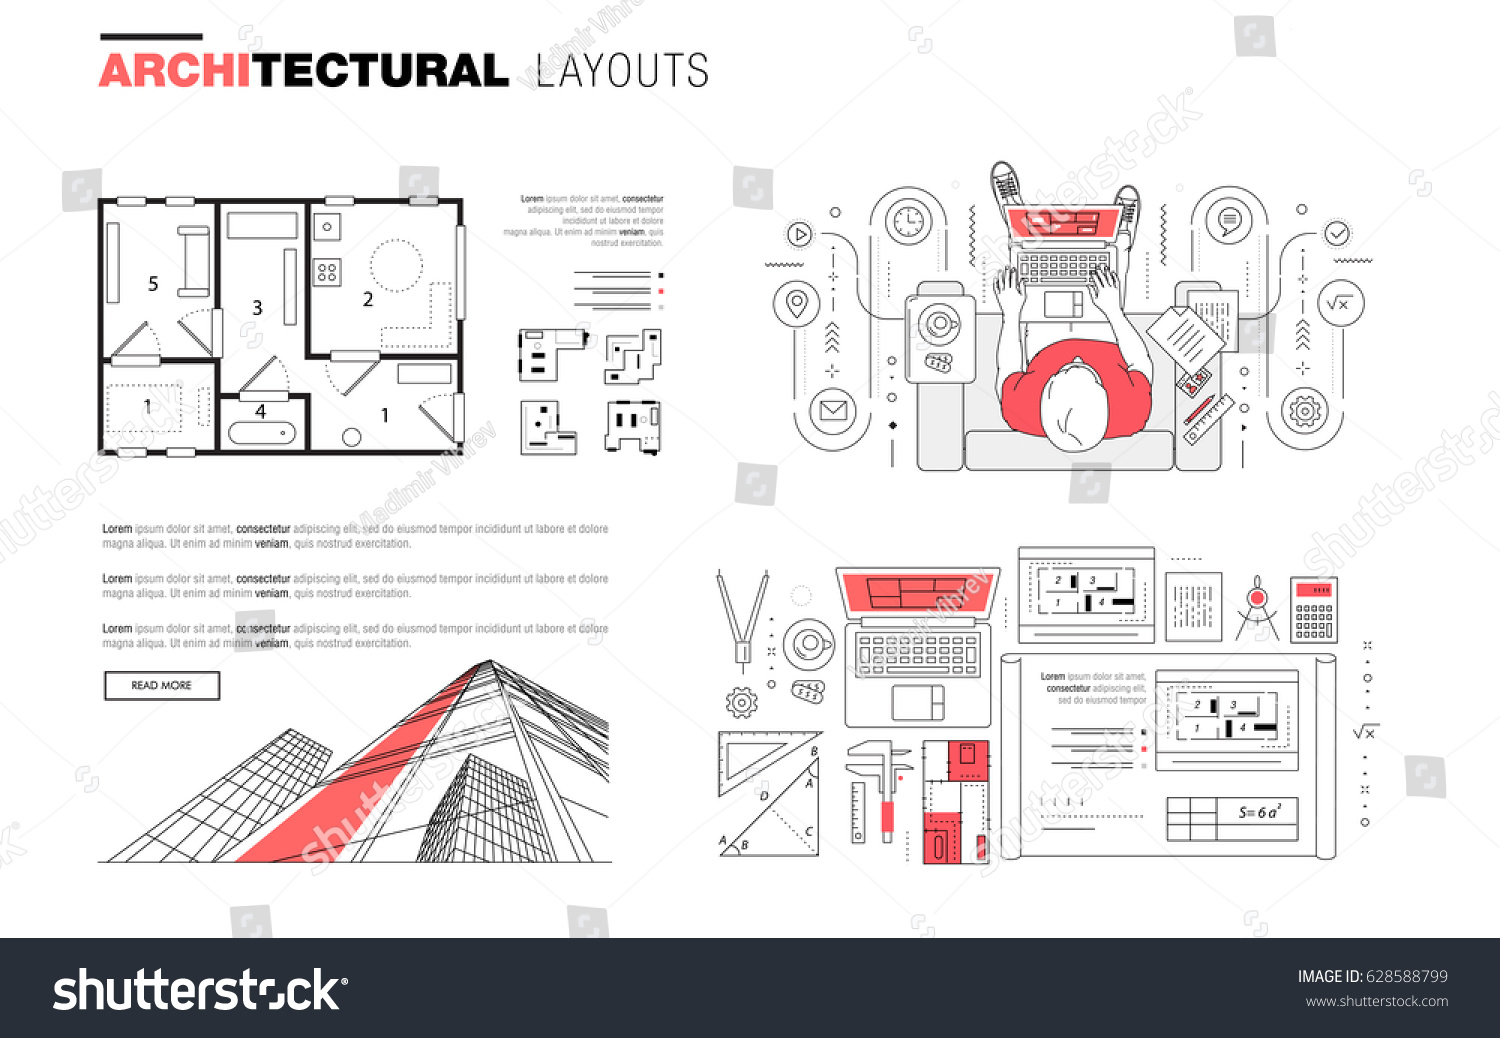 Architectural Layouts Trendy Polygonal Line Composition Stock Stock Vector Architectural  Layouts In Trendy Polygonal Line Composition